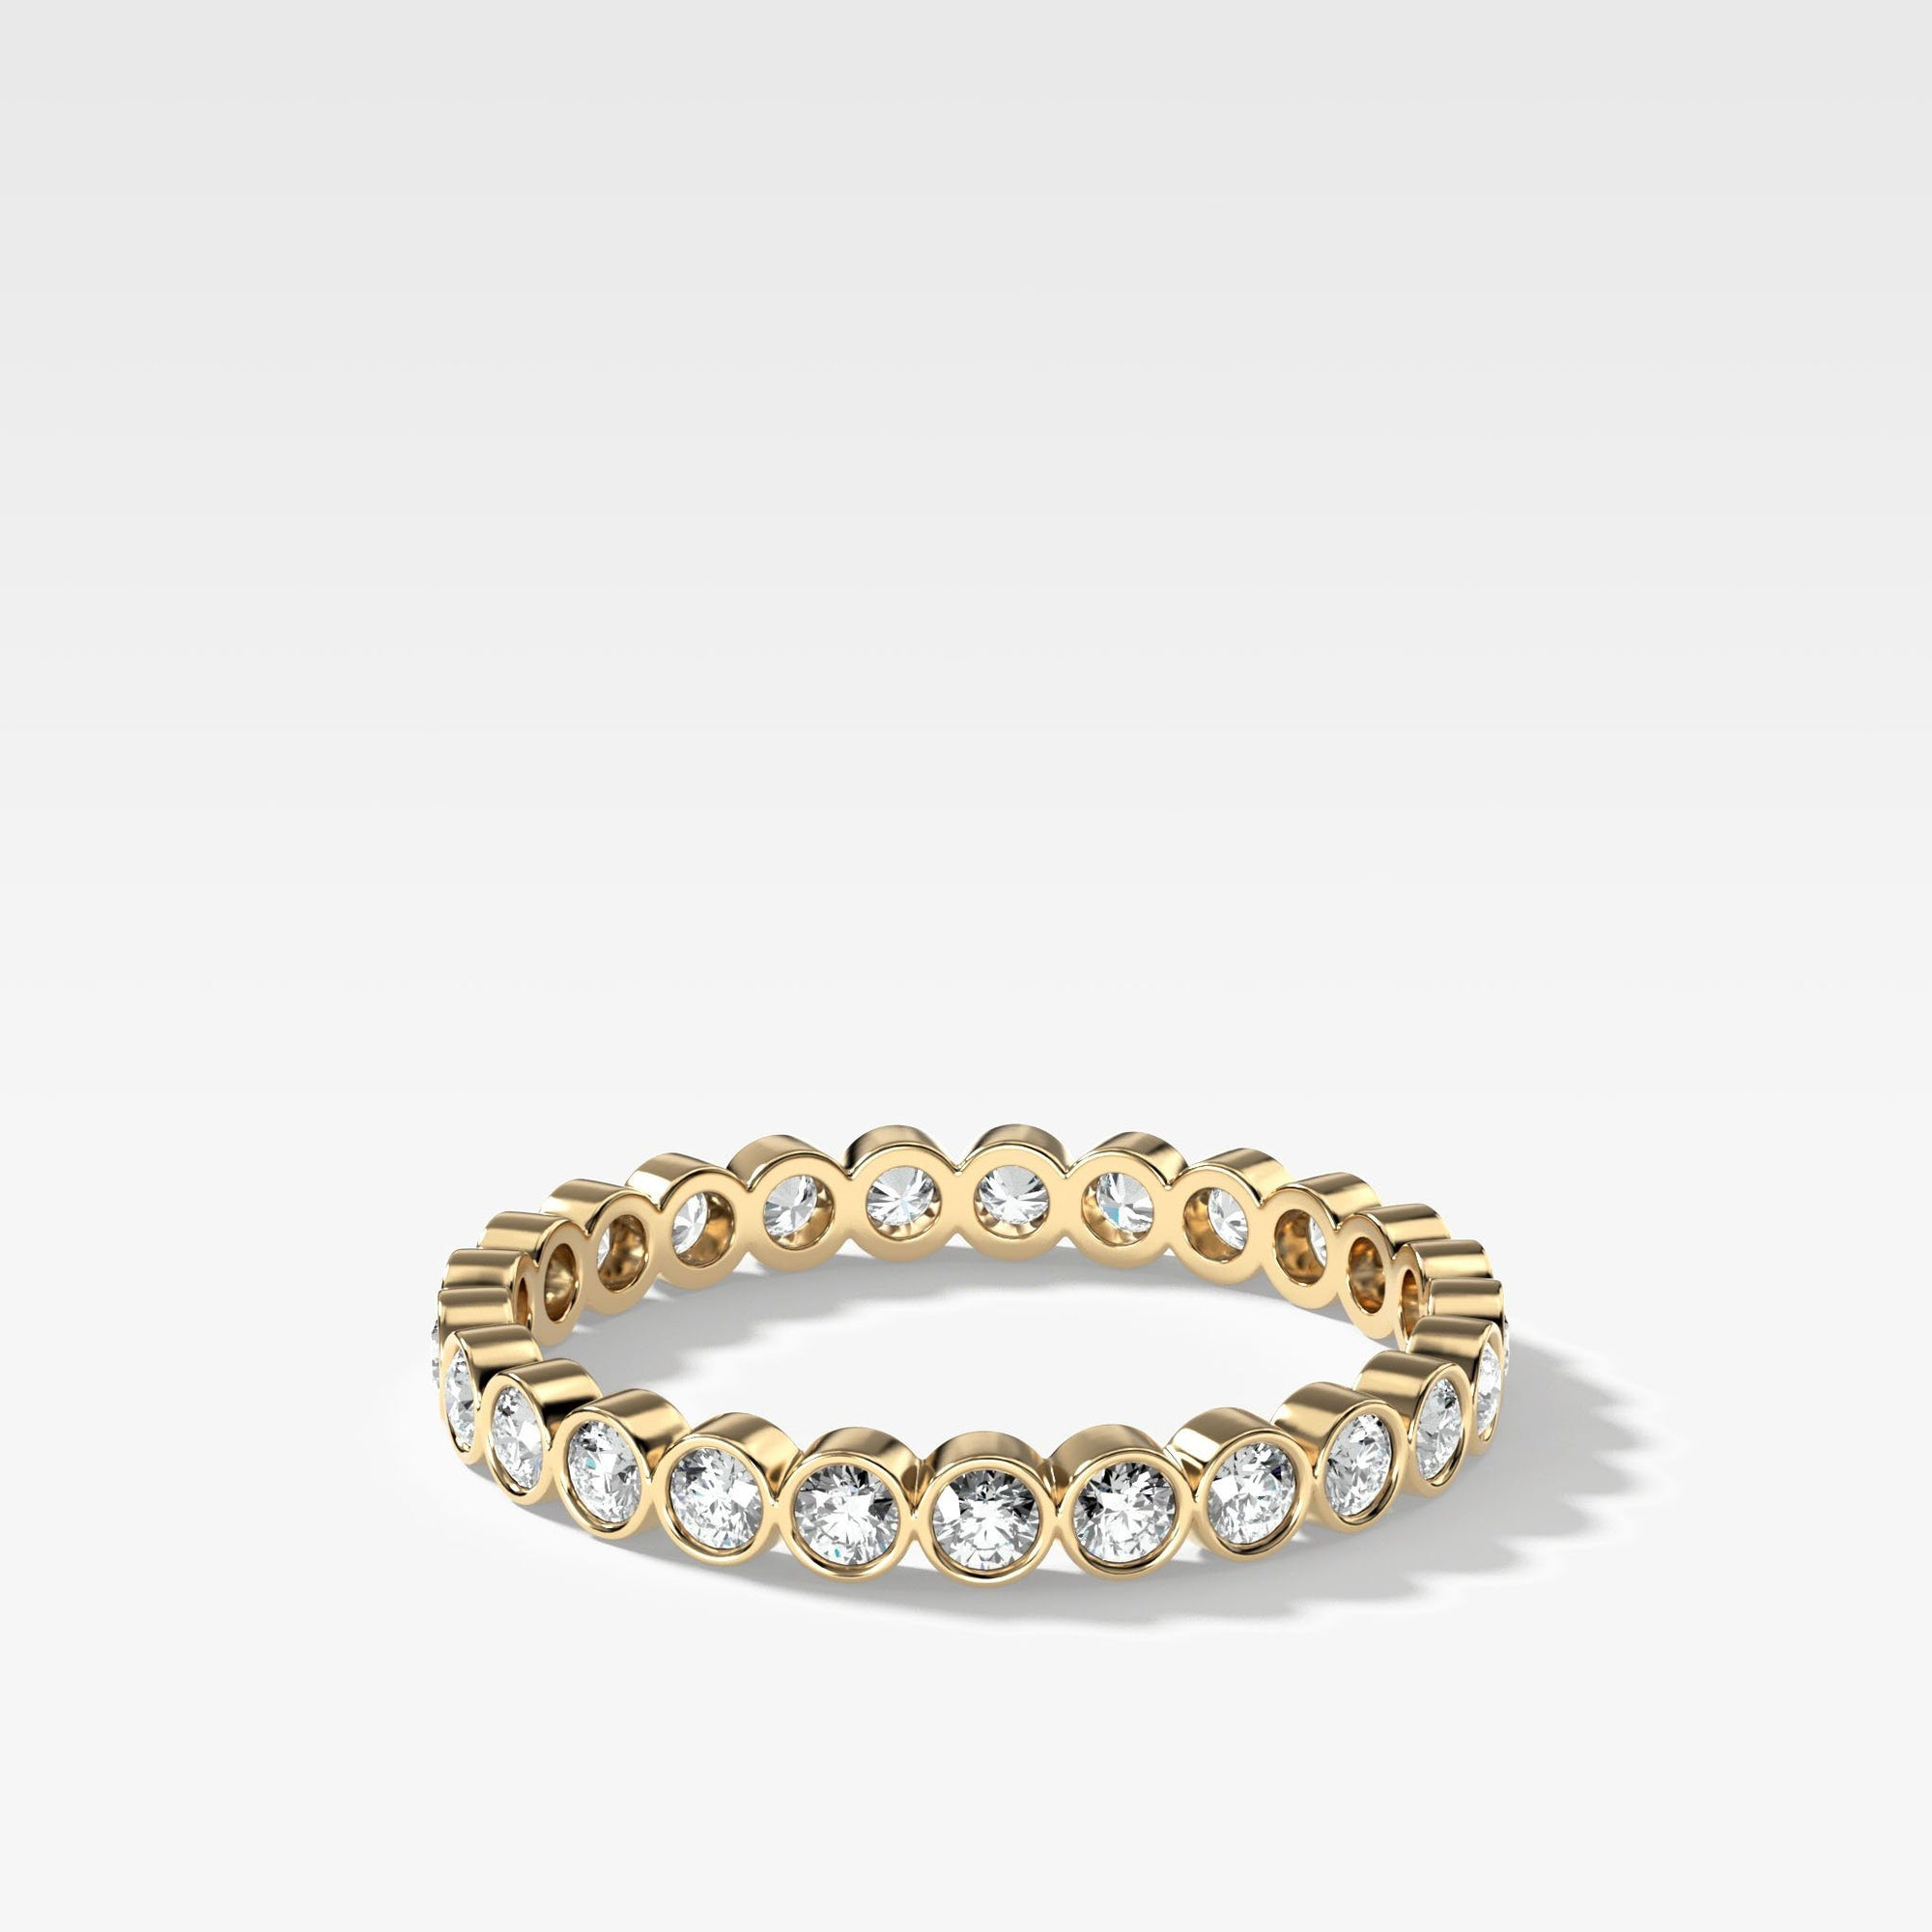 Round Bezel Diamond Wedding Band In Yellow Gold By Good Stone